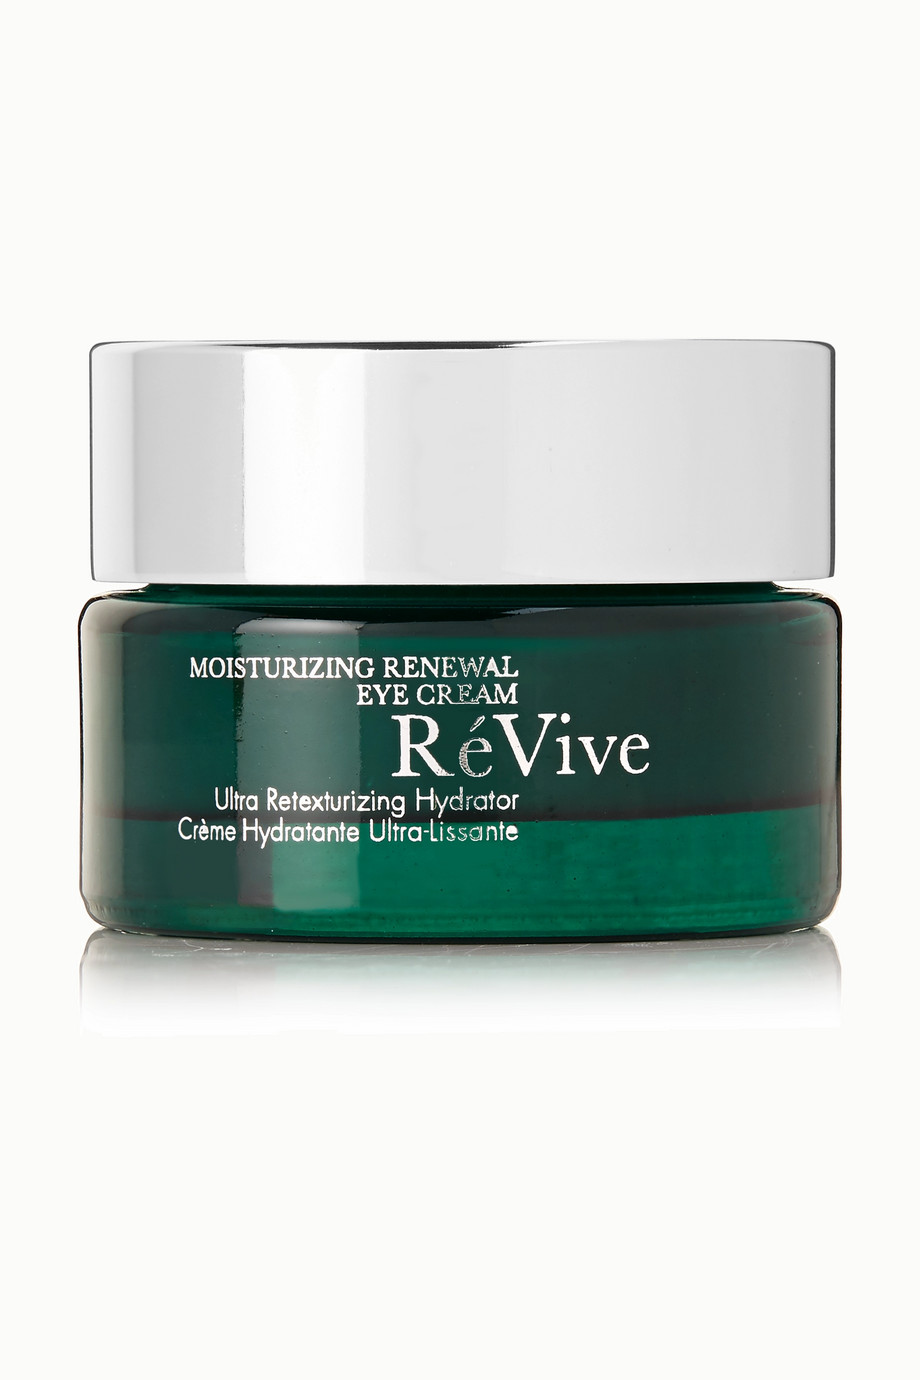 RéVive Moisturizing Renewal Eye Cream, 15ml